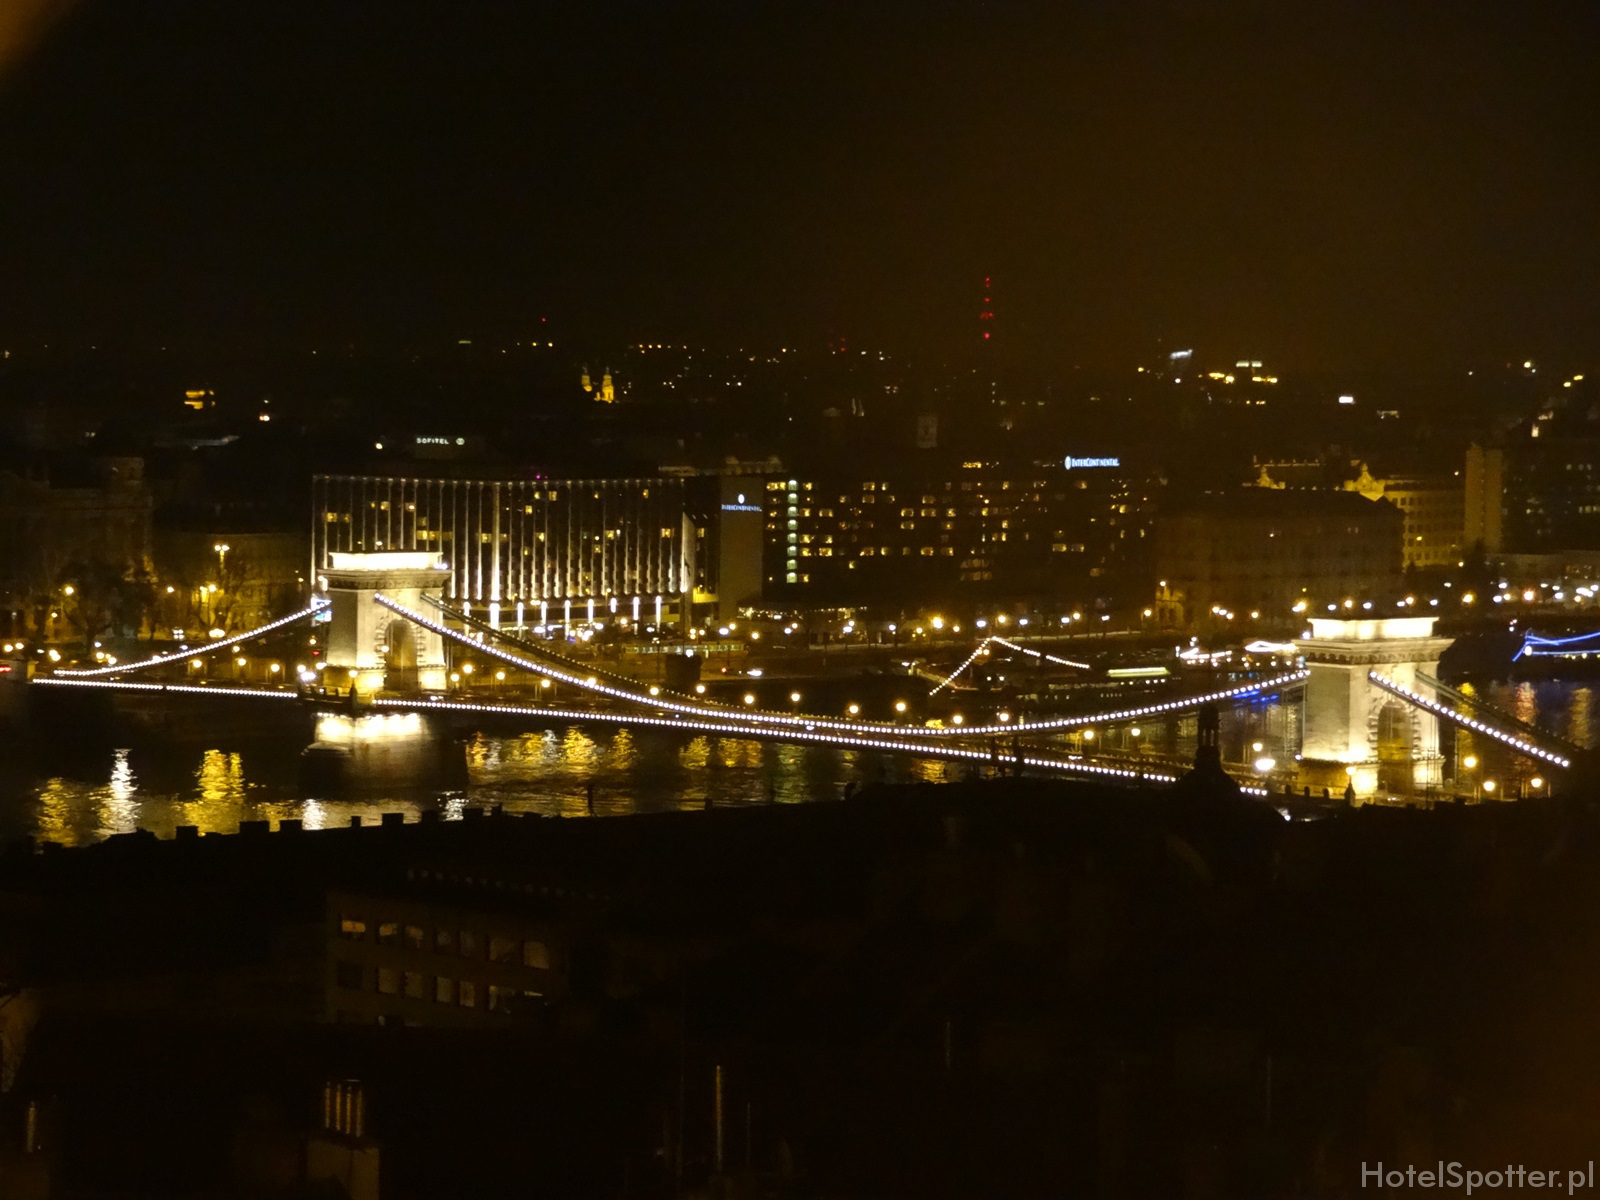 Sofitel Budapest Chain Bridge widok na hotel i Most Lancuchowy